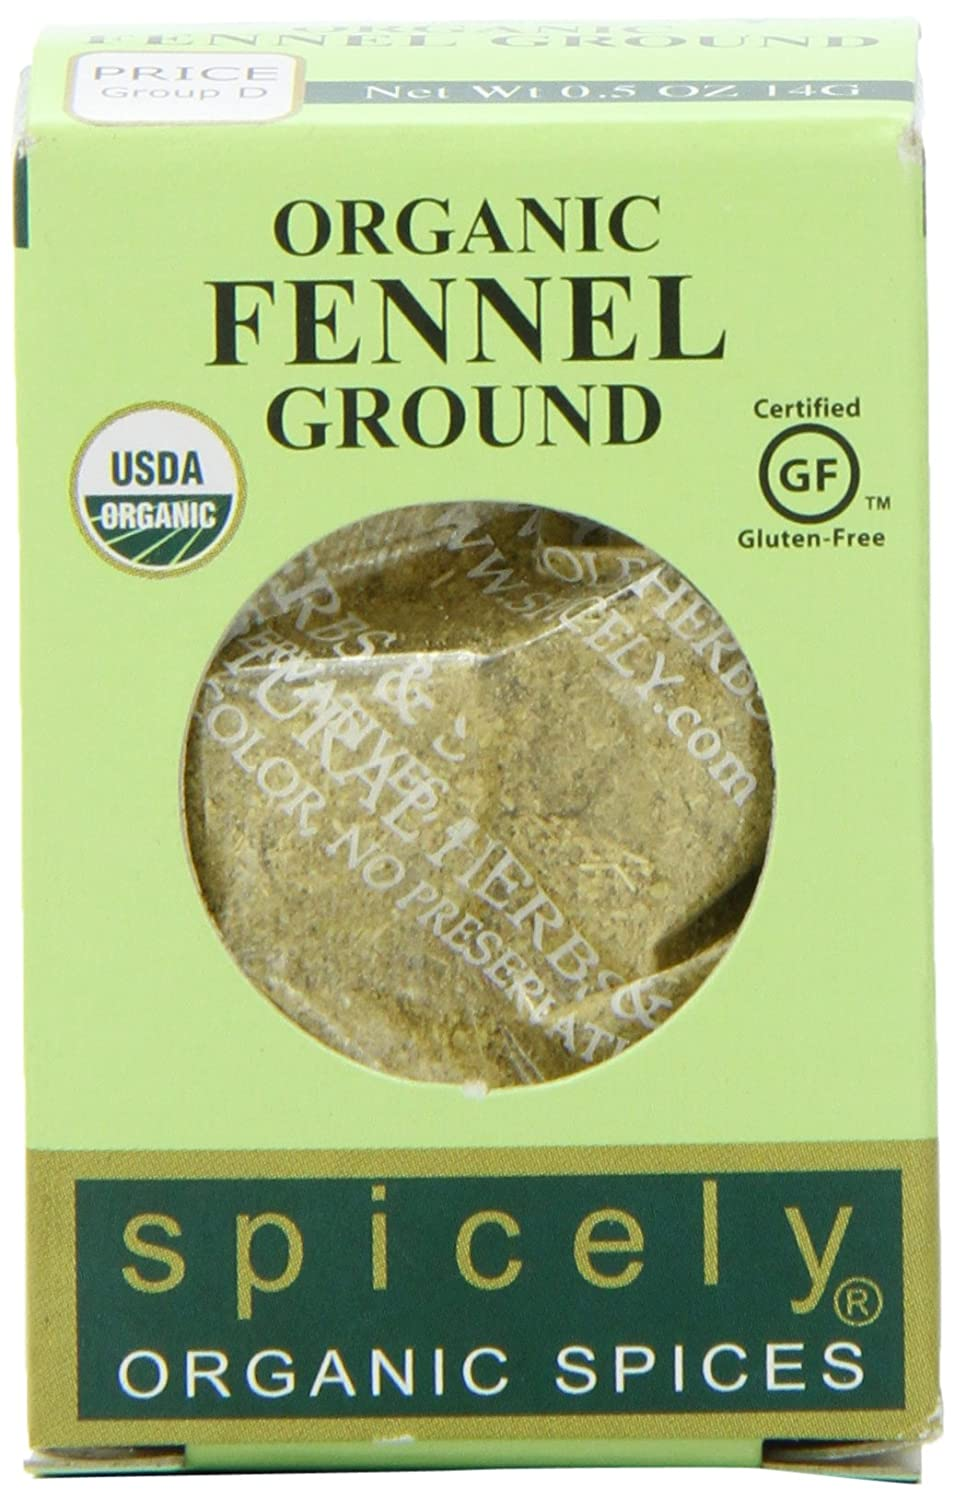 Spicely Organic Fennel Seeds Ground - Compact